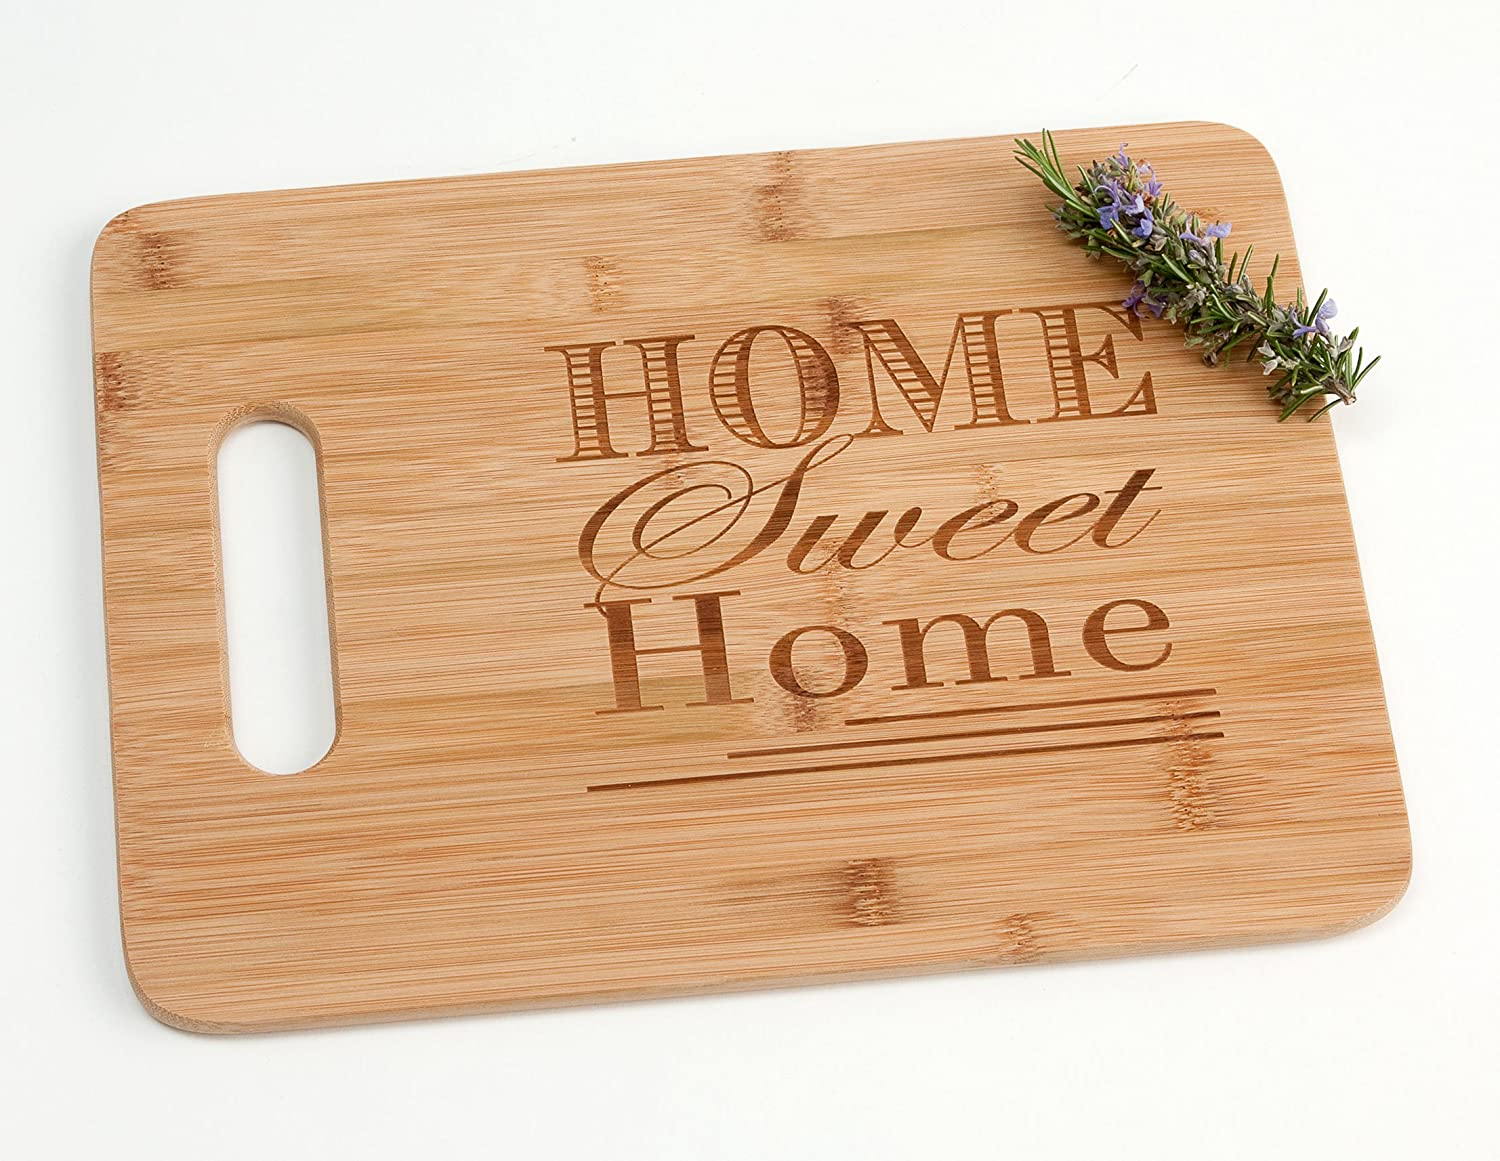 Home Sweet Home Engraved Wood Cutting Board for Housewarming Wedding Gift